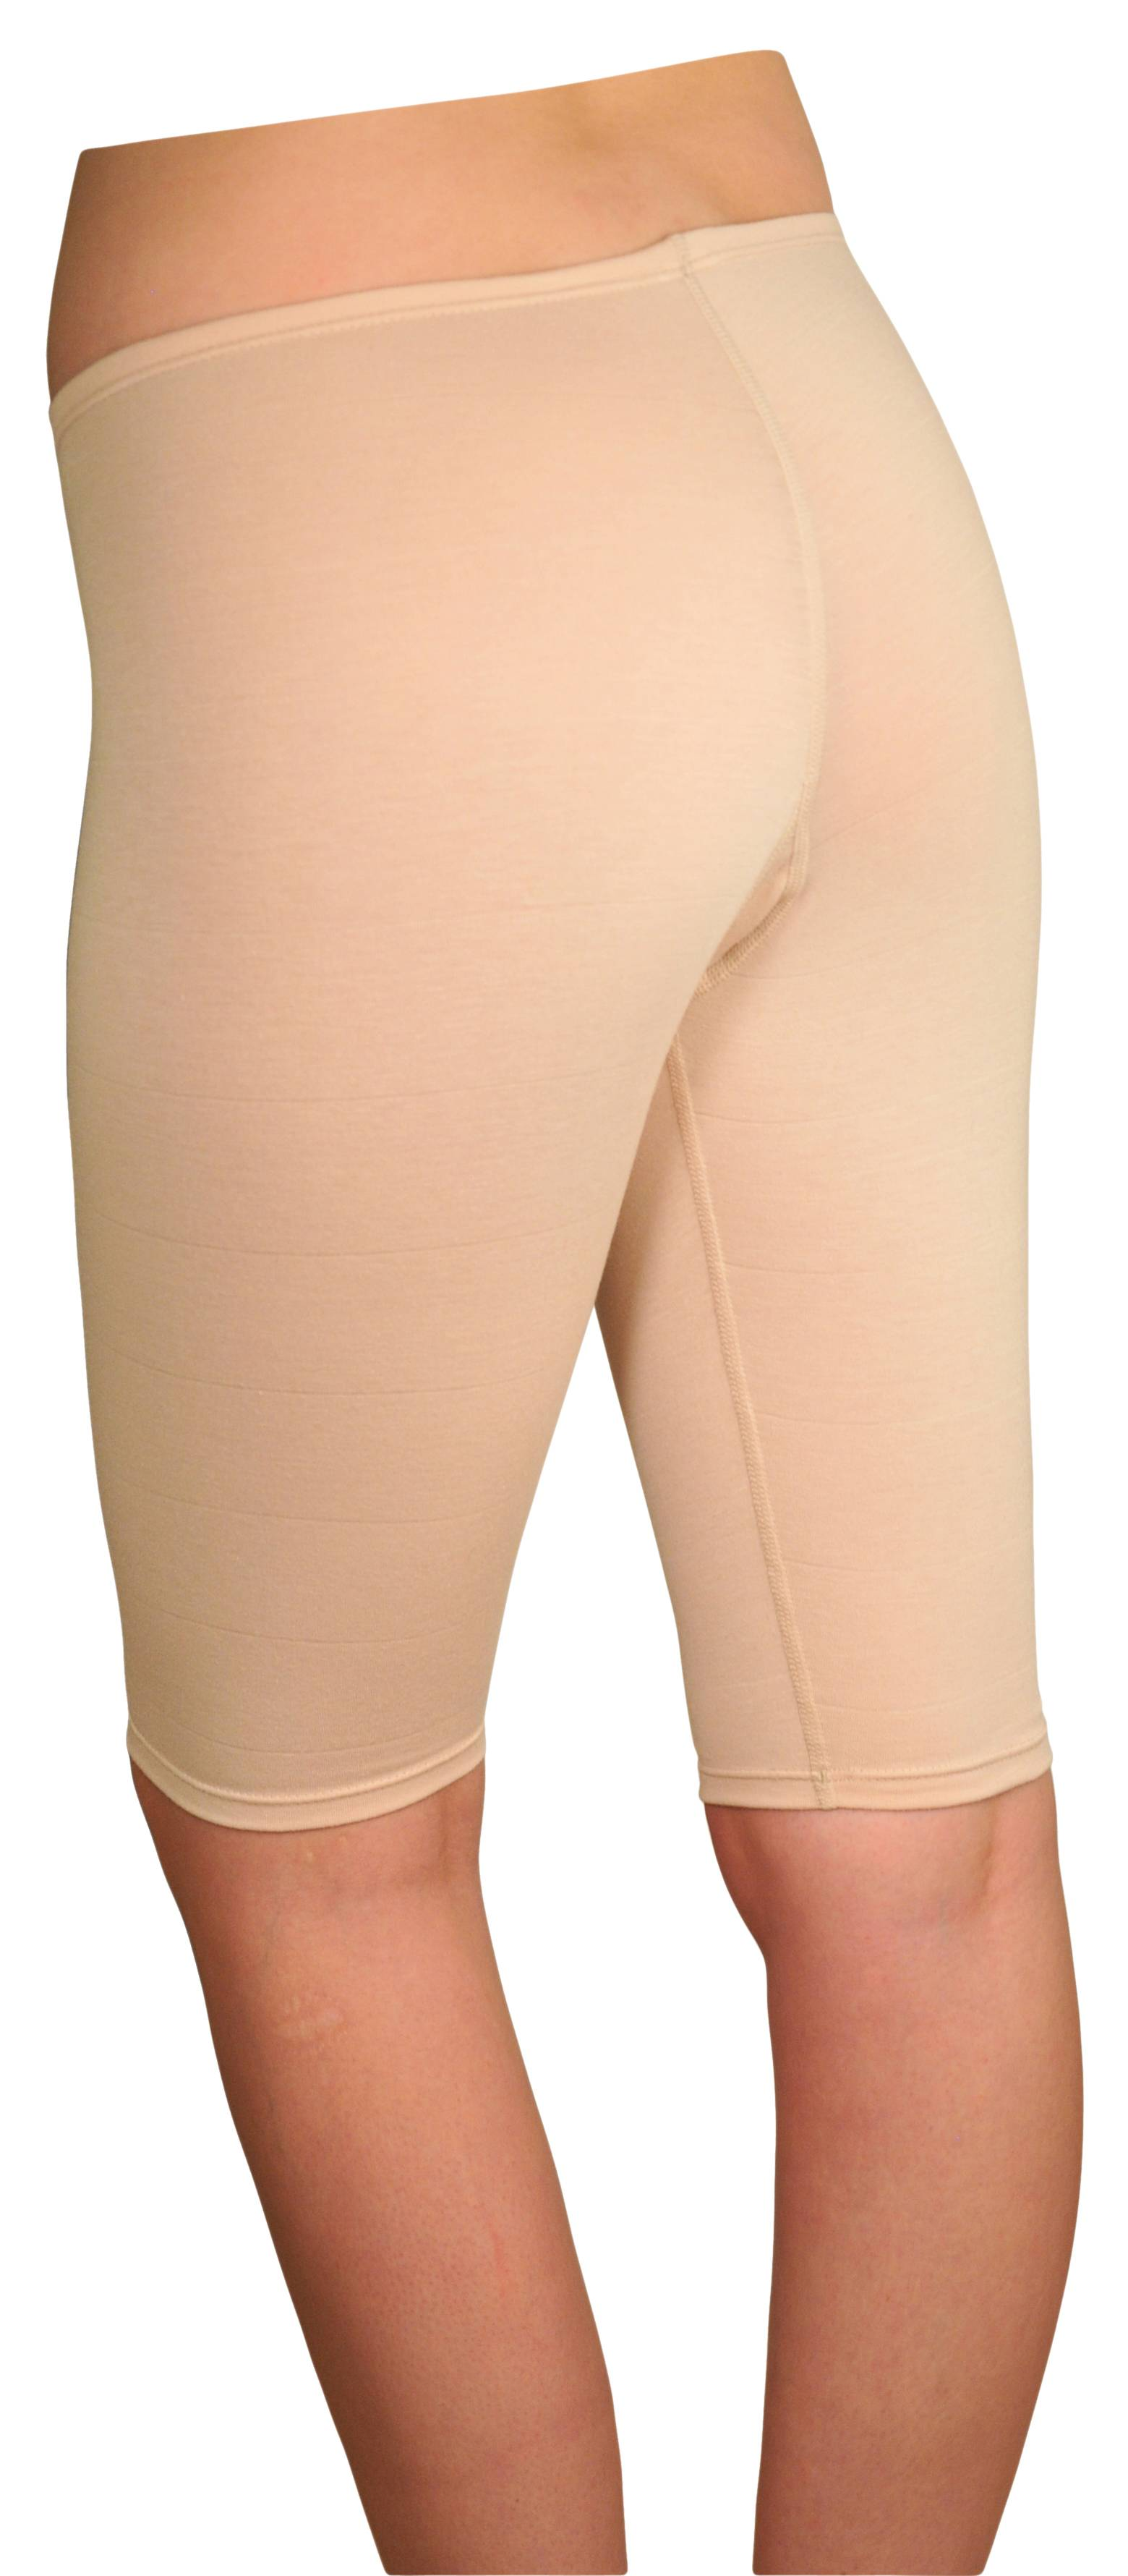 SMARTY PANTS Underwear For Active Women - Extended Leg